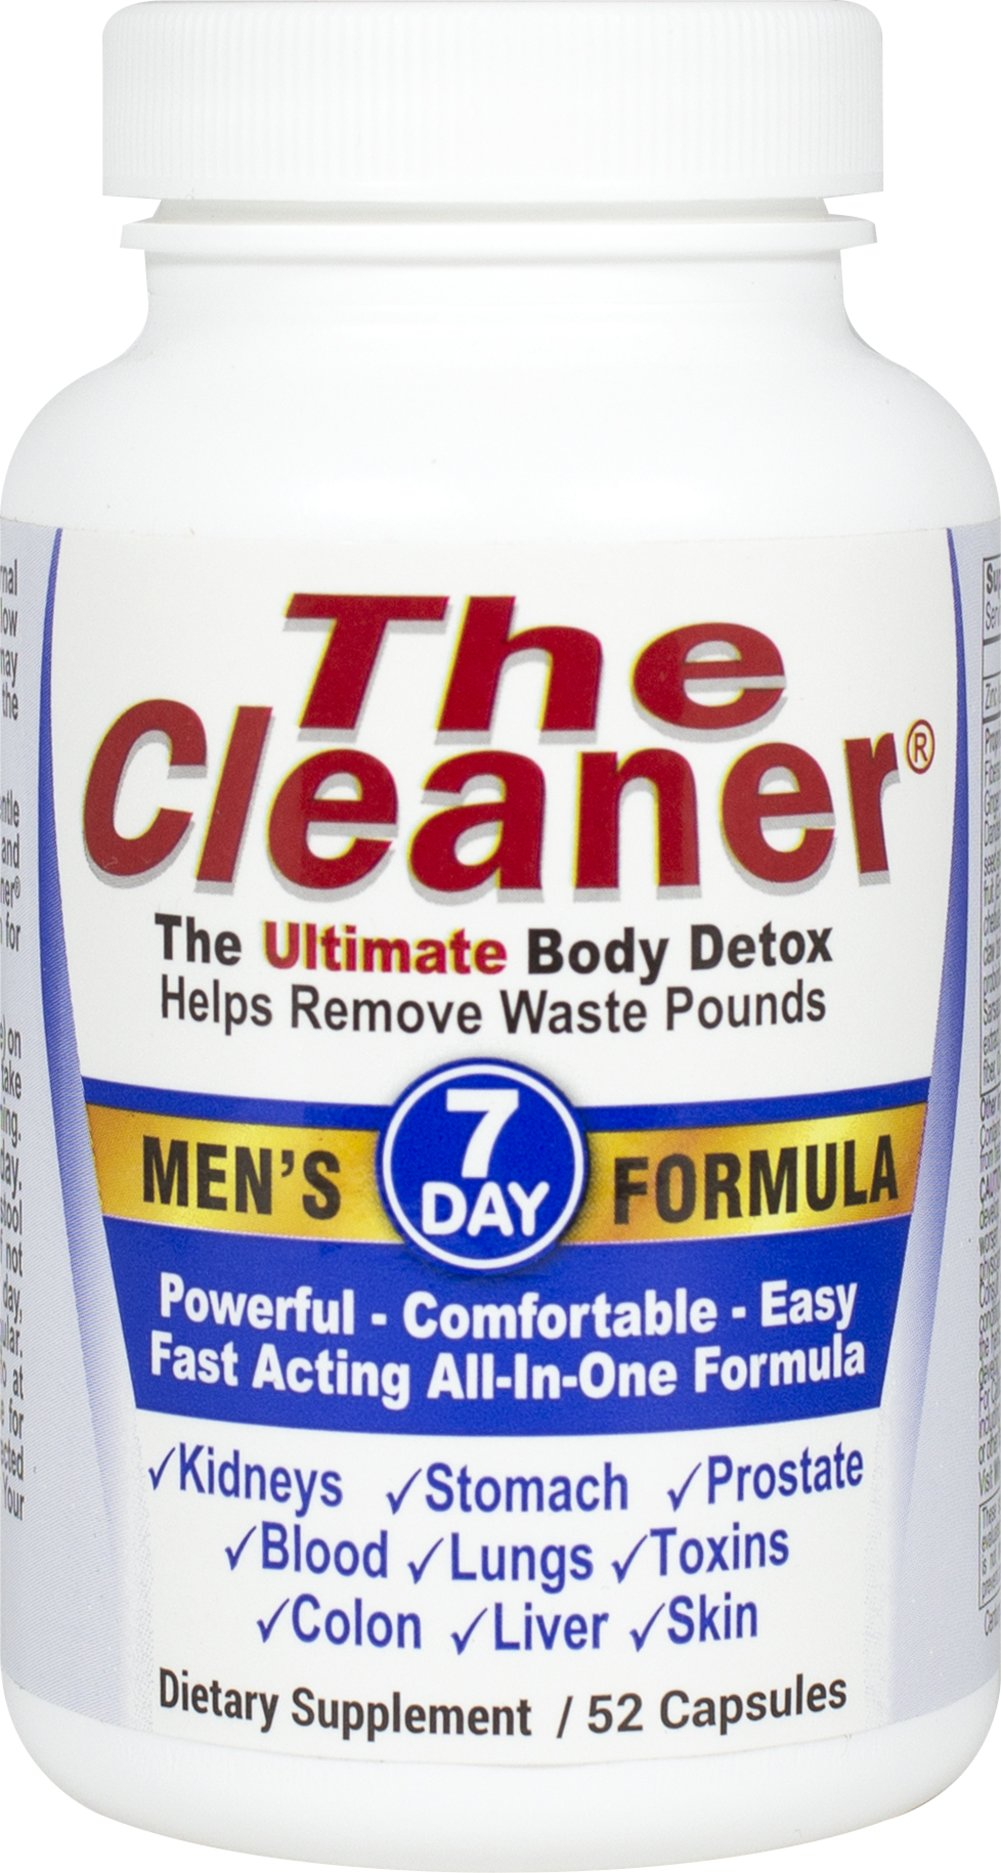 The Cleaner® 7 Day Men'S Formula <p><strong>From the Manufacturer's Label: </strong></p><p>The Cleaner® is fast and powerful yet gentle enough to allow you to travel, work and continue your normal routine. The Cleaner® uses vegetable capsules instead of gelatin for those who desire an animal free detox.</p><p>Are you troubled by constipation, excessive gas, a bloated stomach or recurring headaches? Are you carrying unwanted pounds,